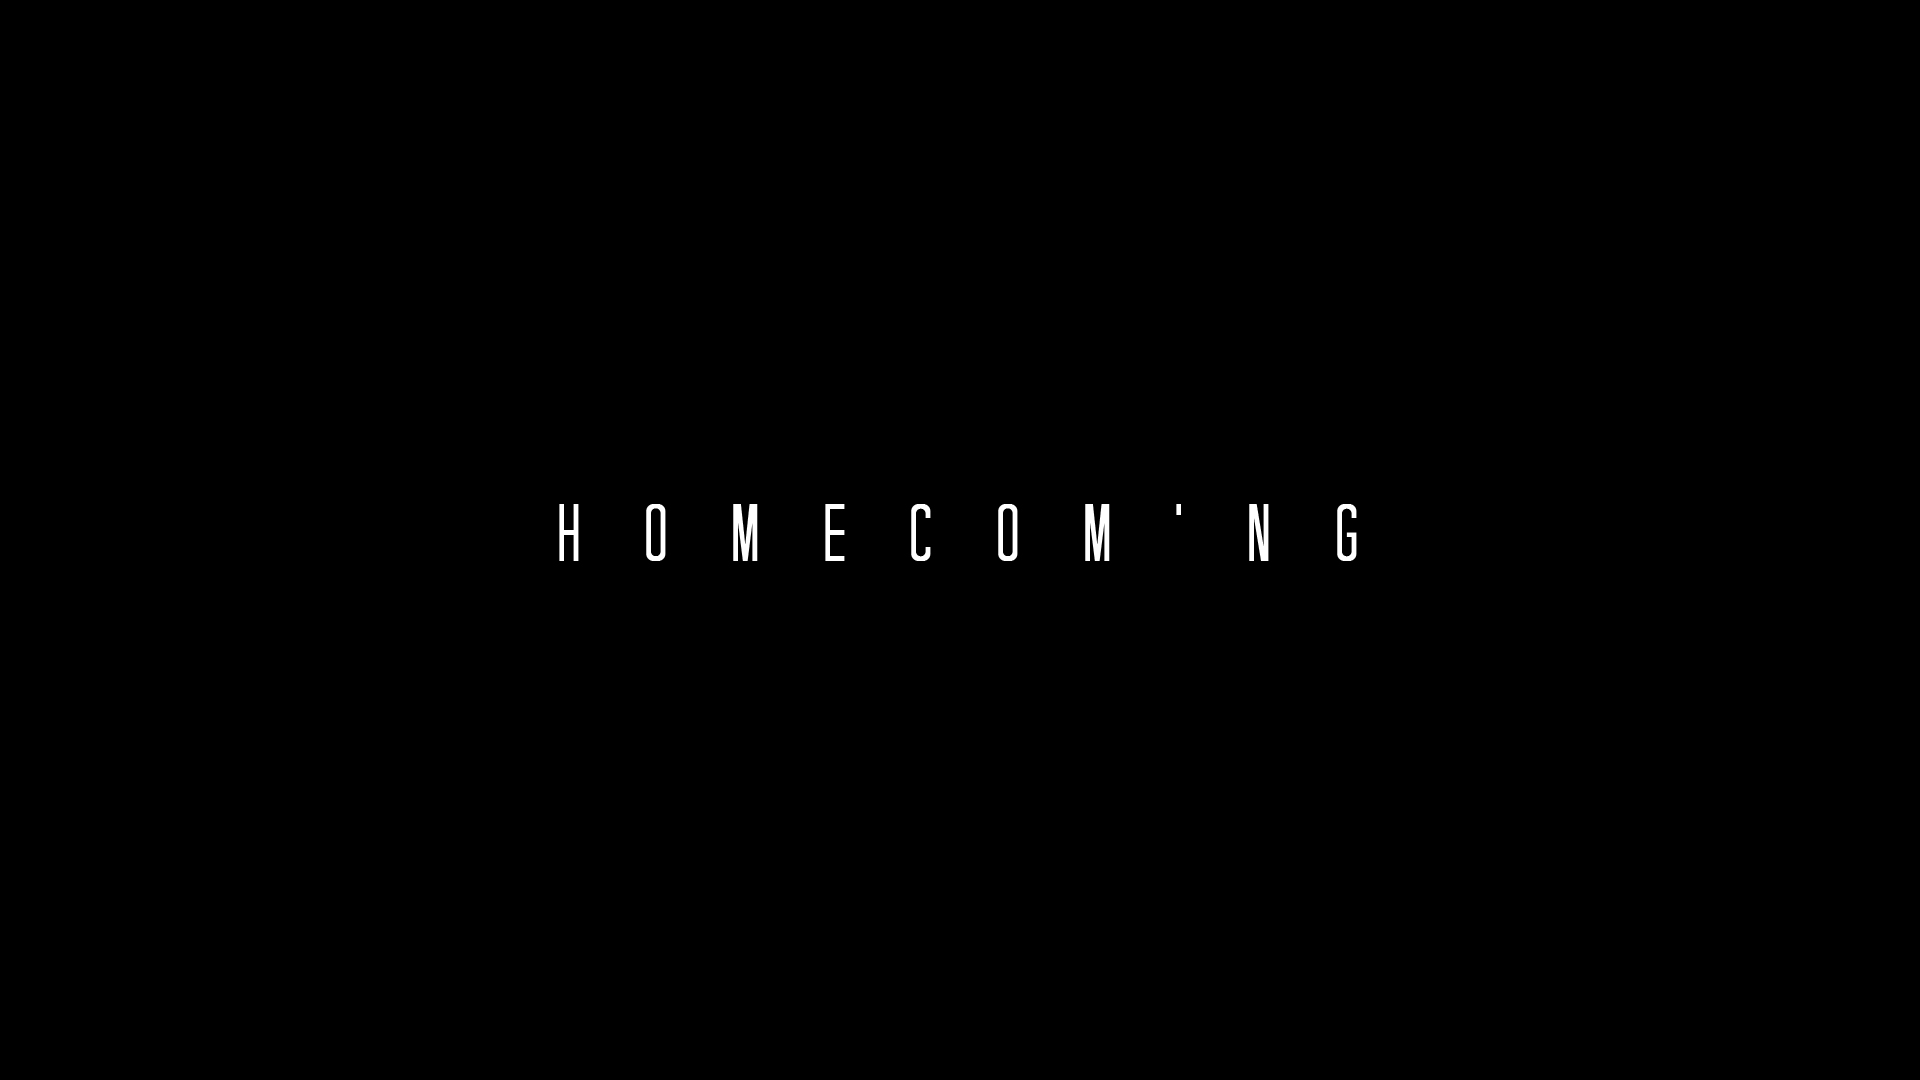 HomecomingTypeExp7.jpg